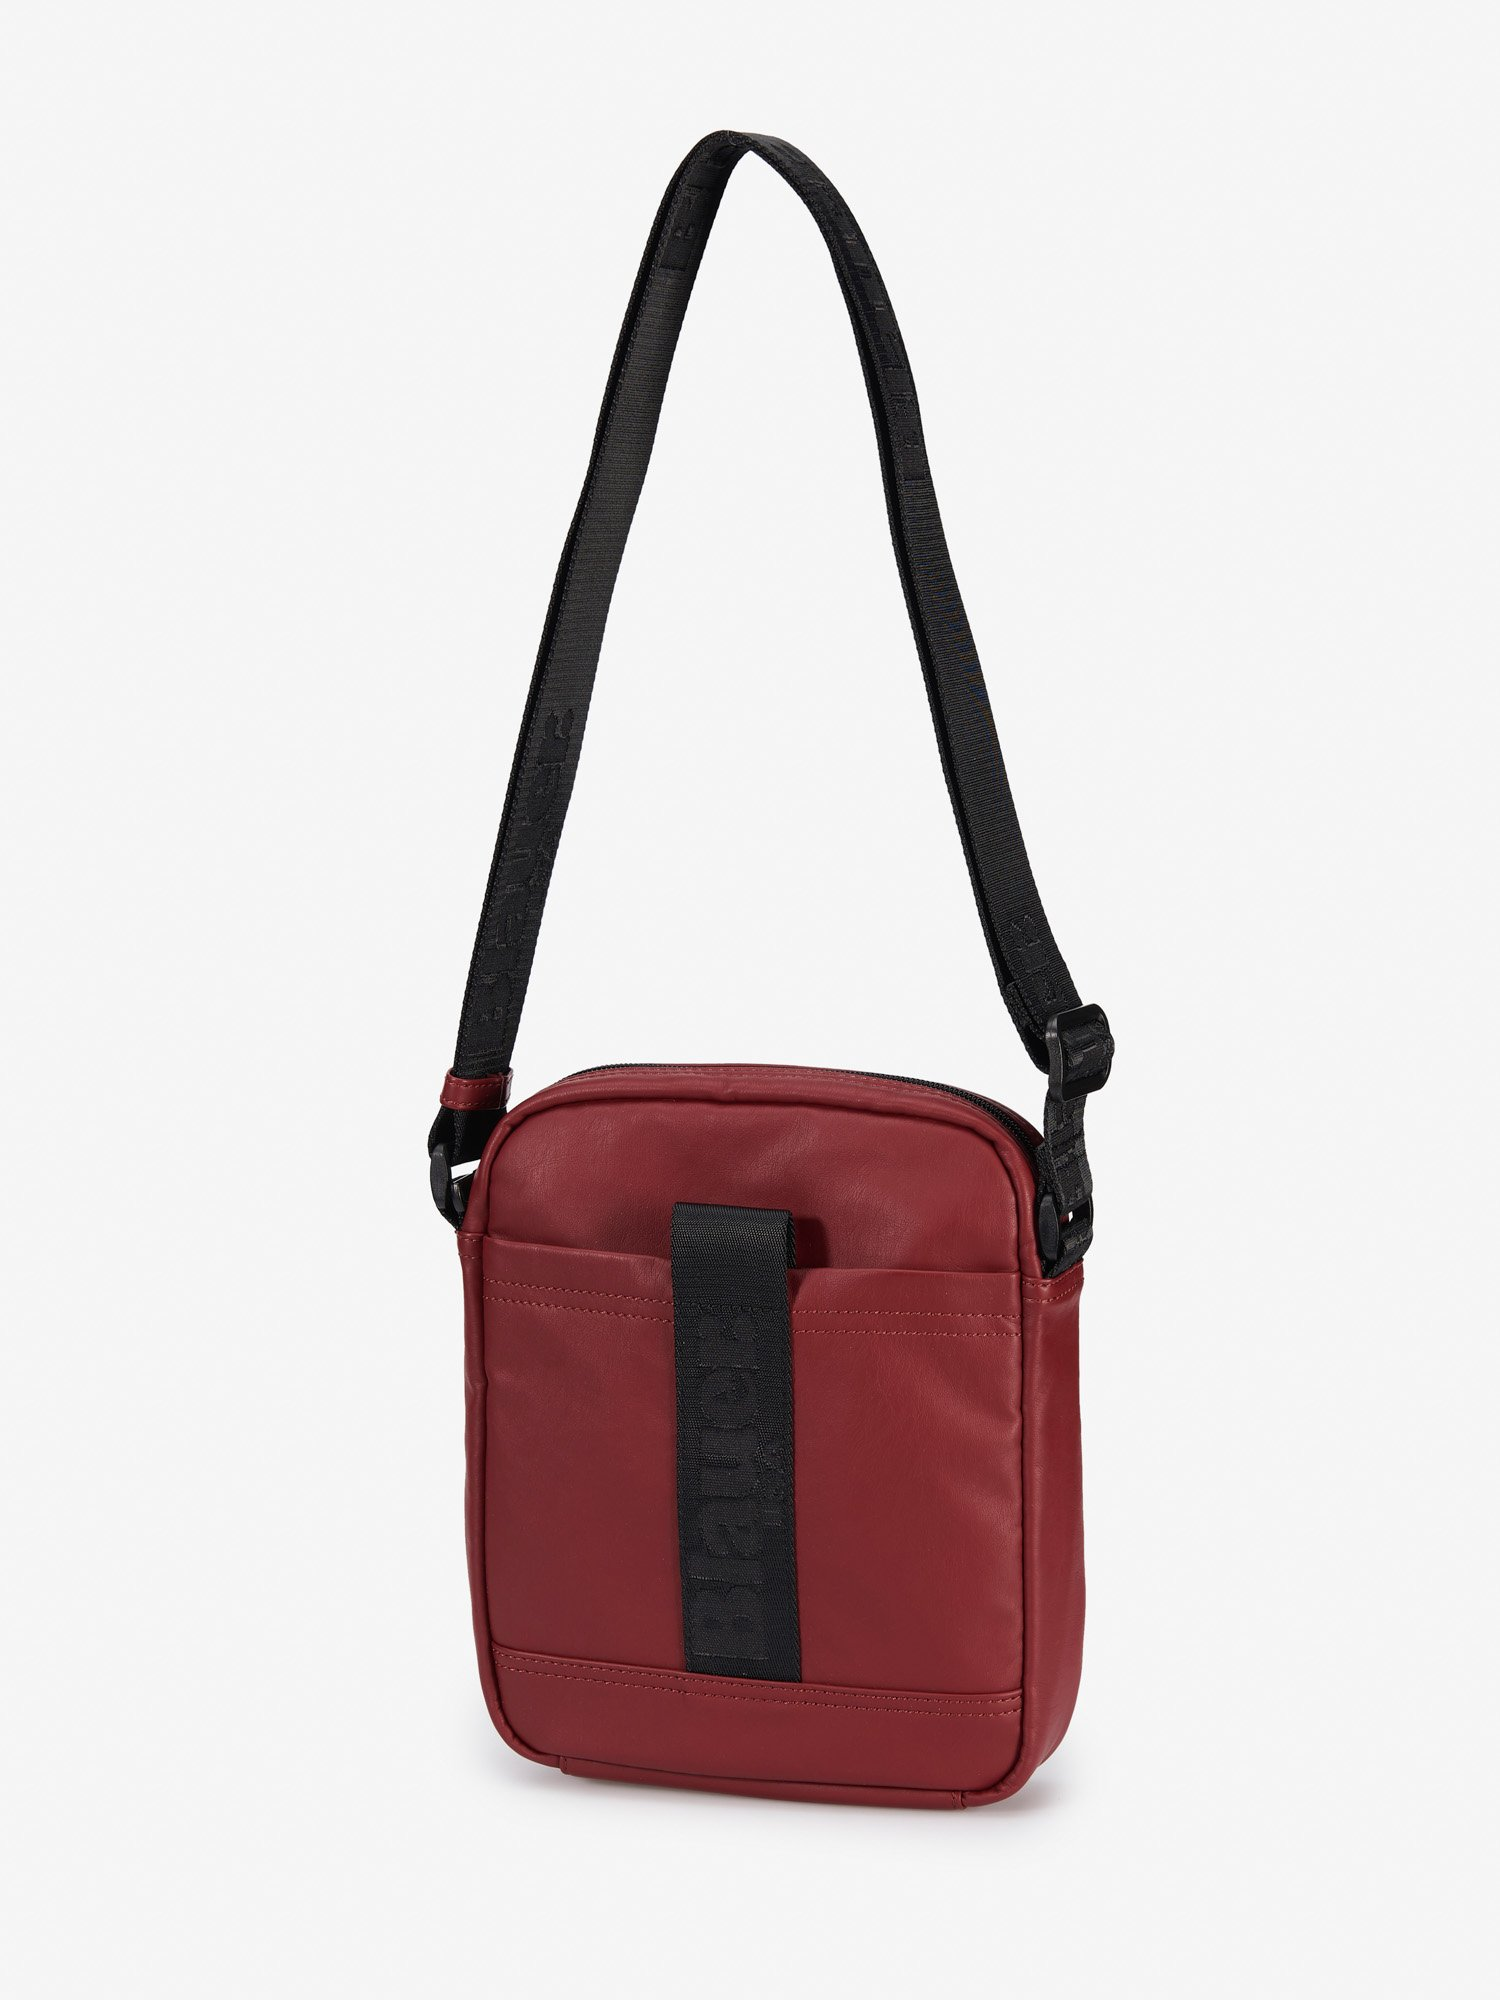 Blauer - SMALL SHOULDER BAG - red - Blauer